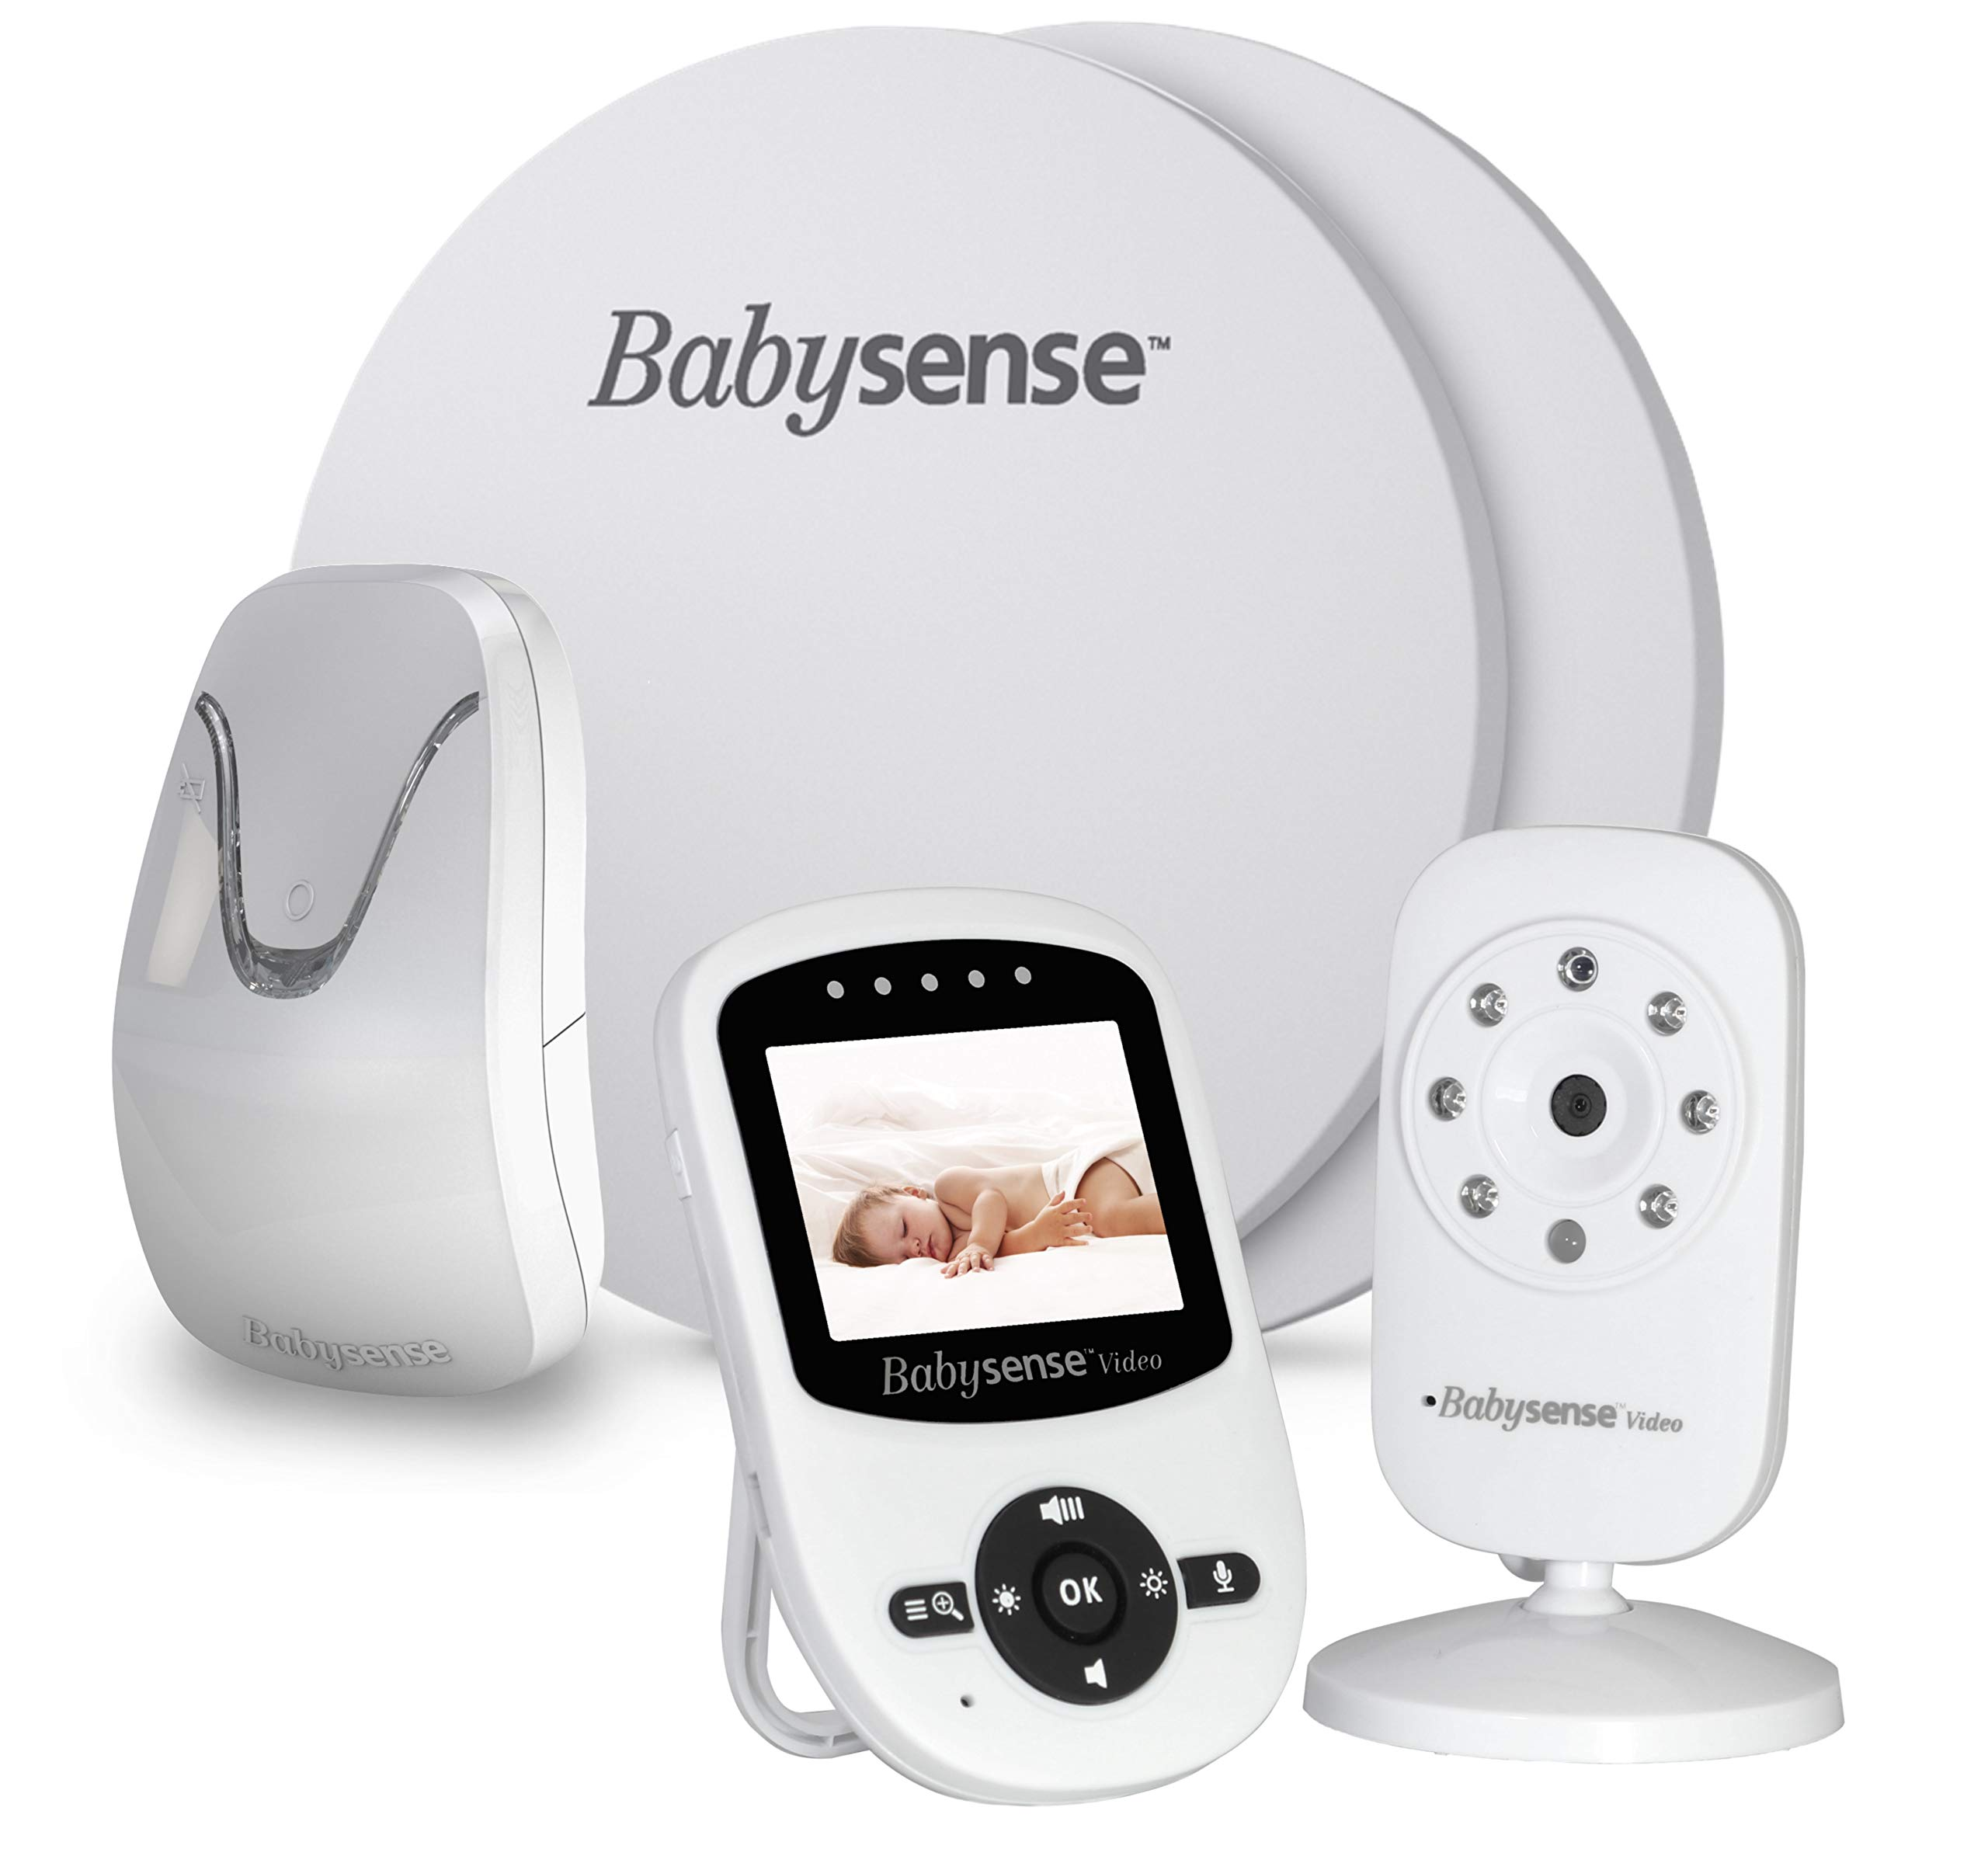 New Model - Babysense Video & Baby Movement Monitor - Bundle Pack - Babysense Video Baby Monitor V24 with Babysense 7 Under-The-Mattress Baby Movement Monitor - 2 in 1 by Babysense